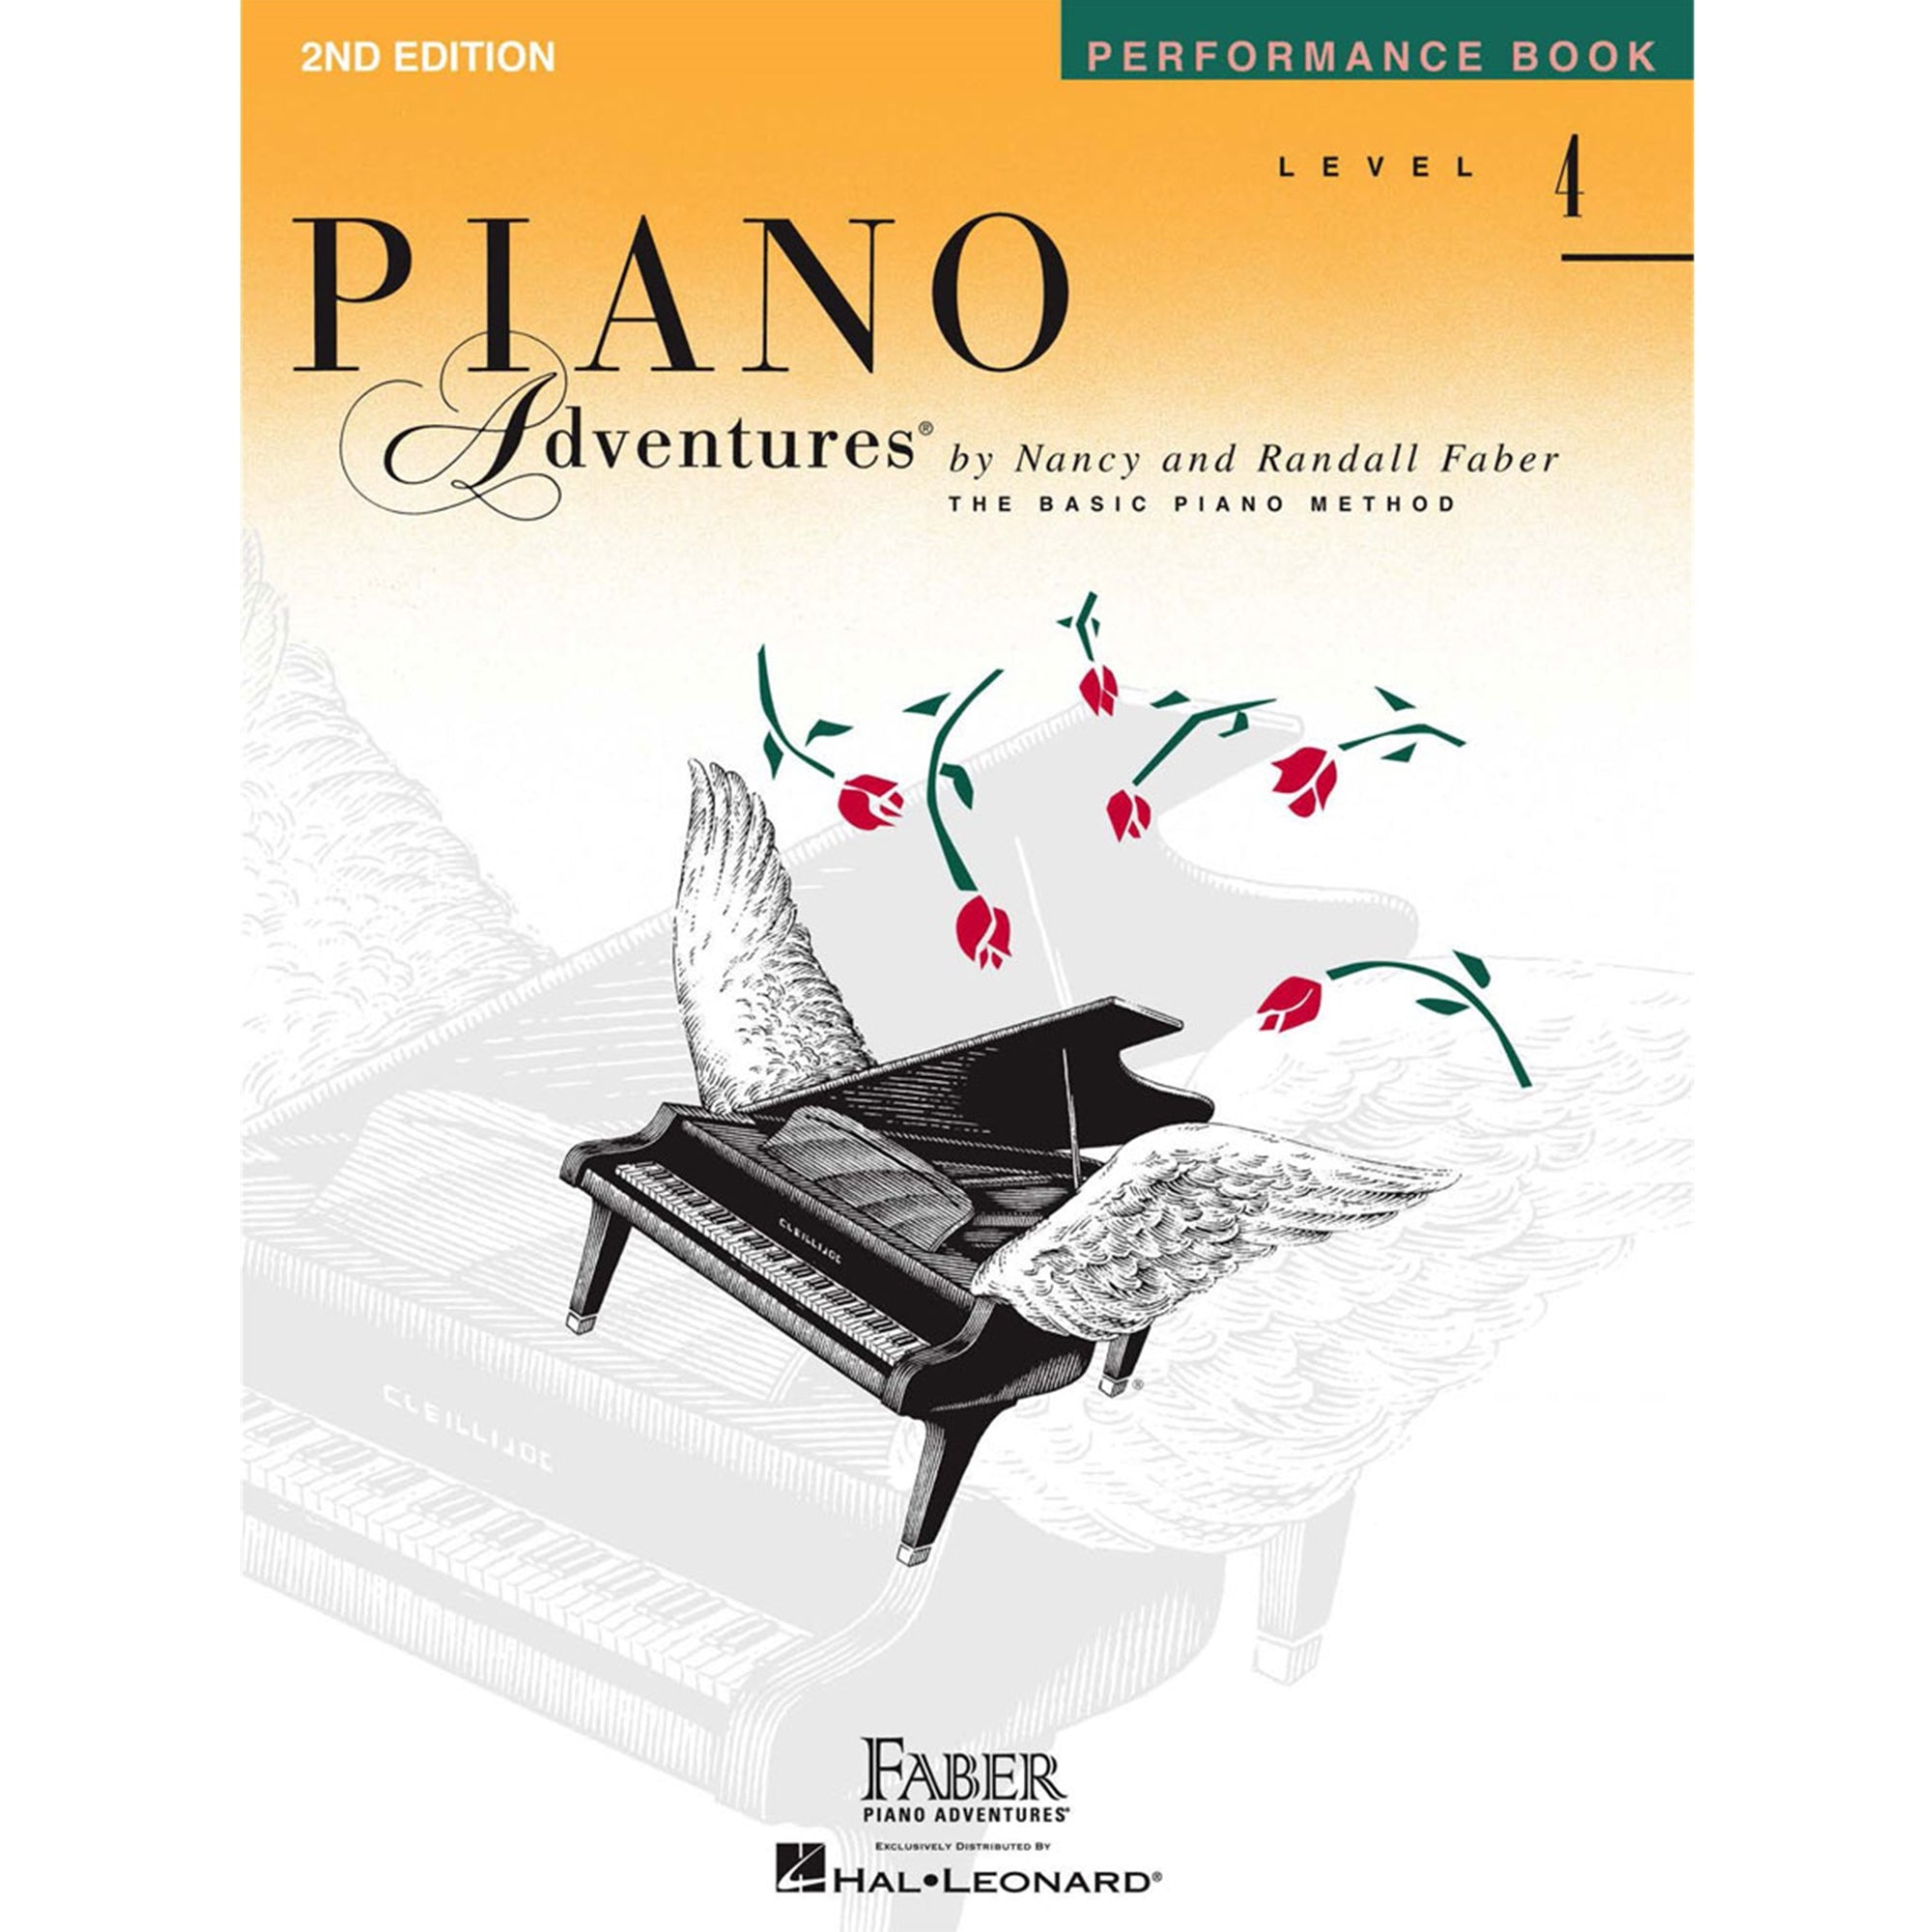 FJH PUBLISHER 420185 Piano Adventures Performance Level 4